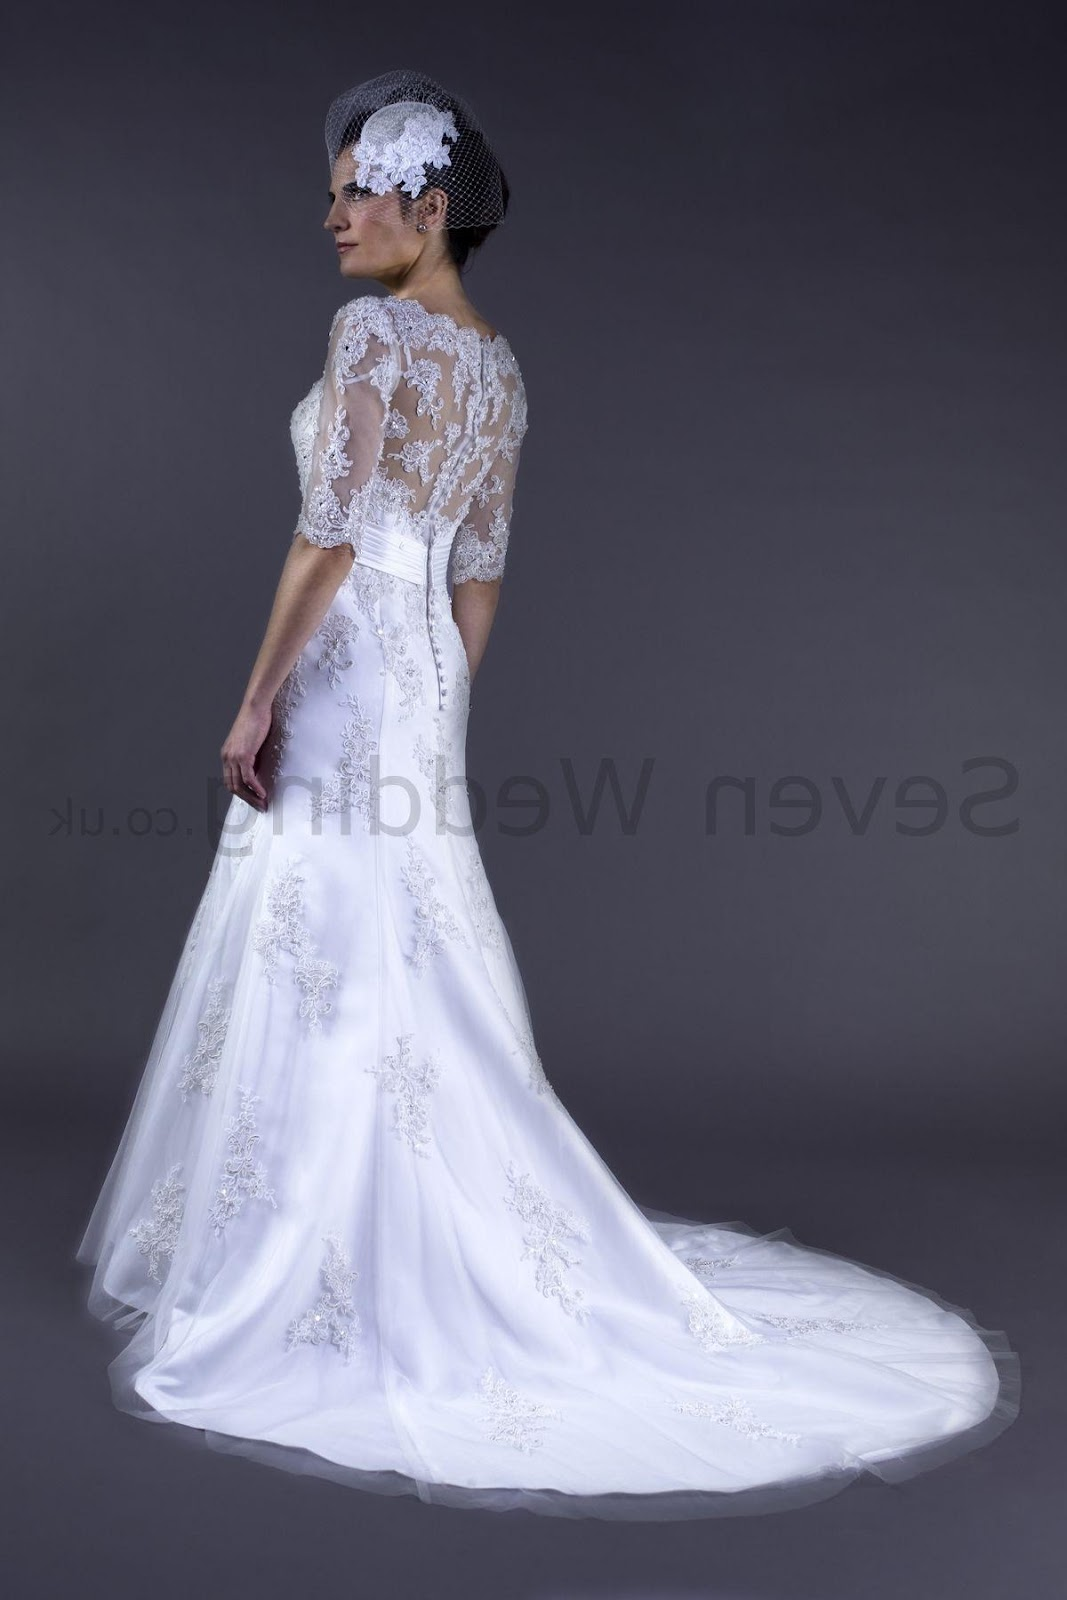 Amberly 39 s blog lace overlay wedding dress for Wedding dress lace overlay